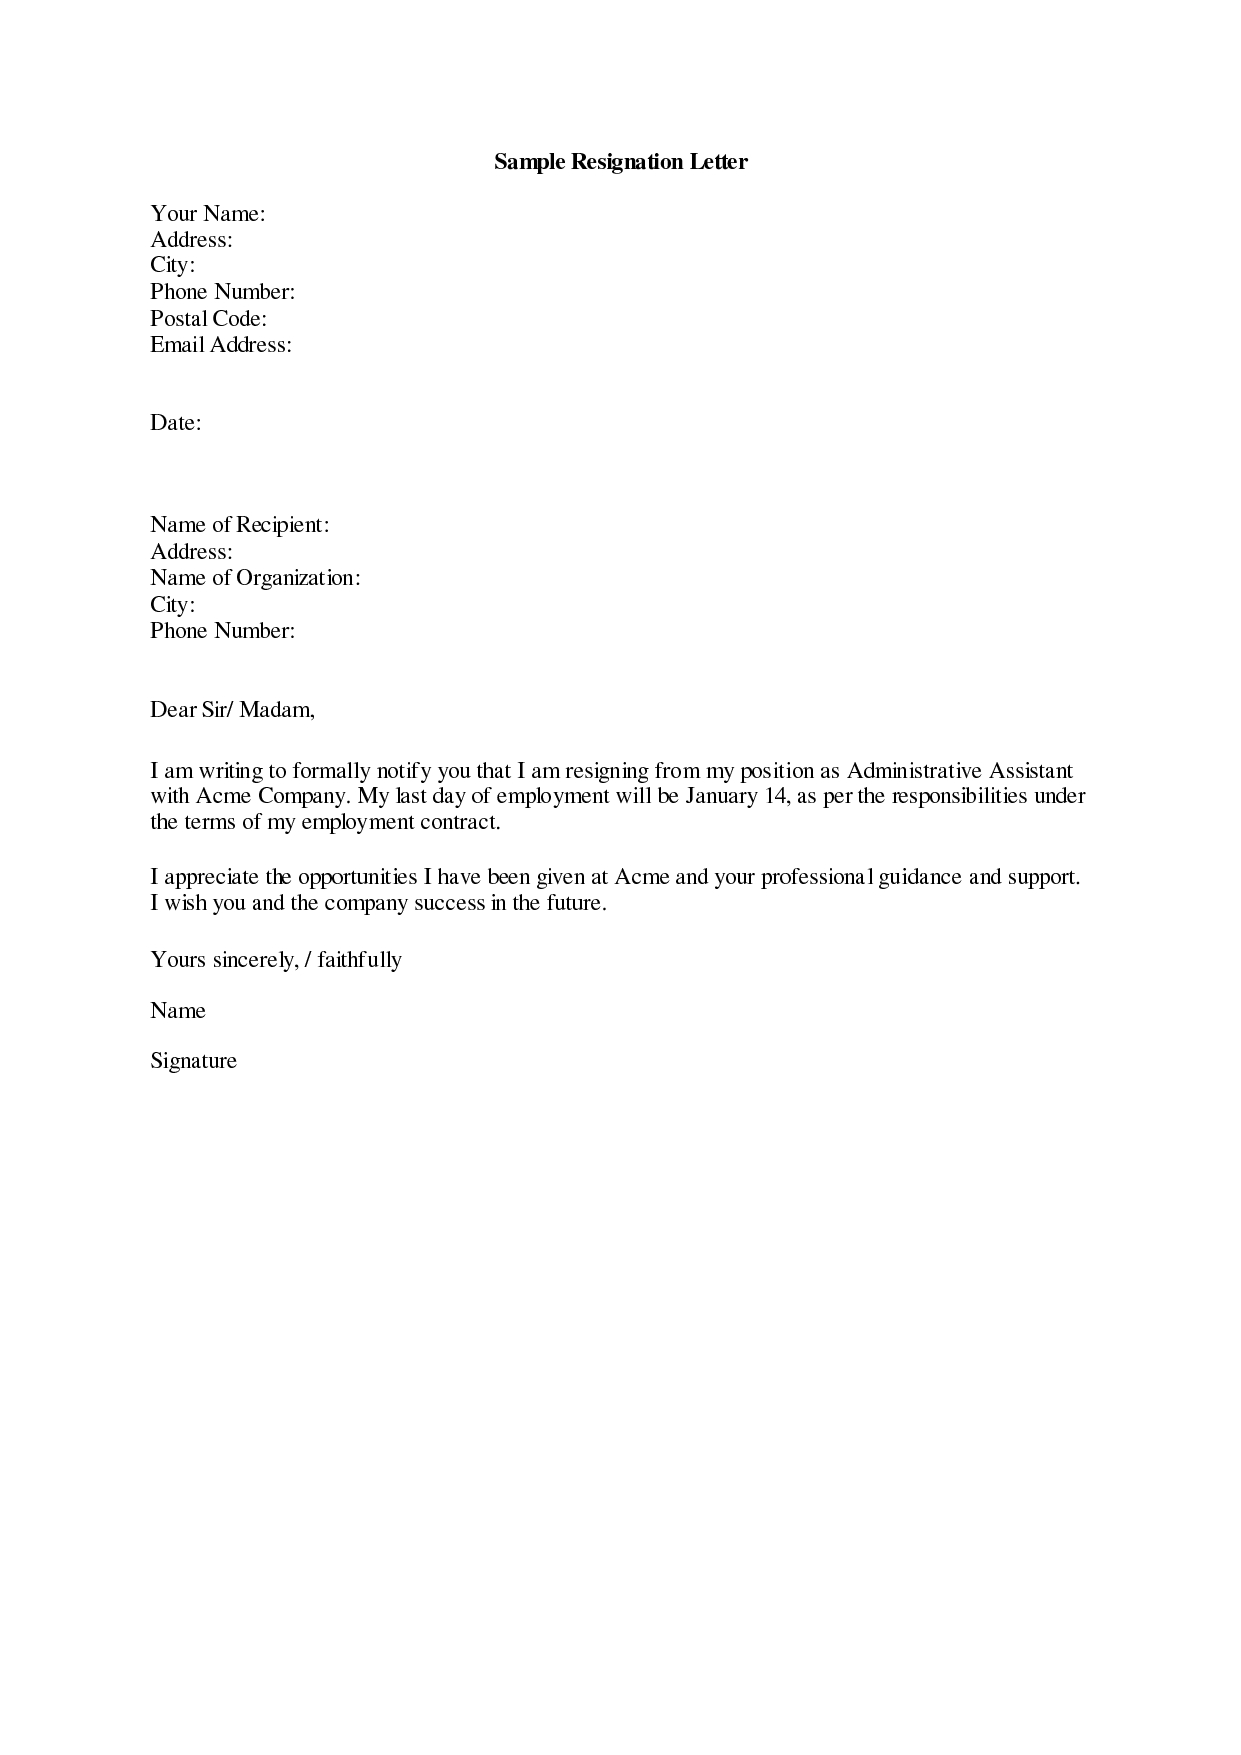 Letter For Resignation Pdf Job Format Resign Template Free Download